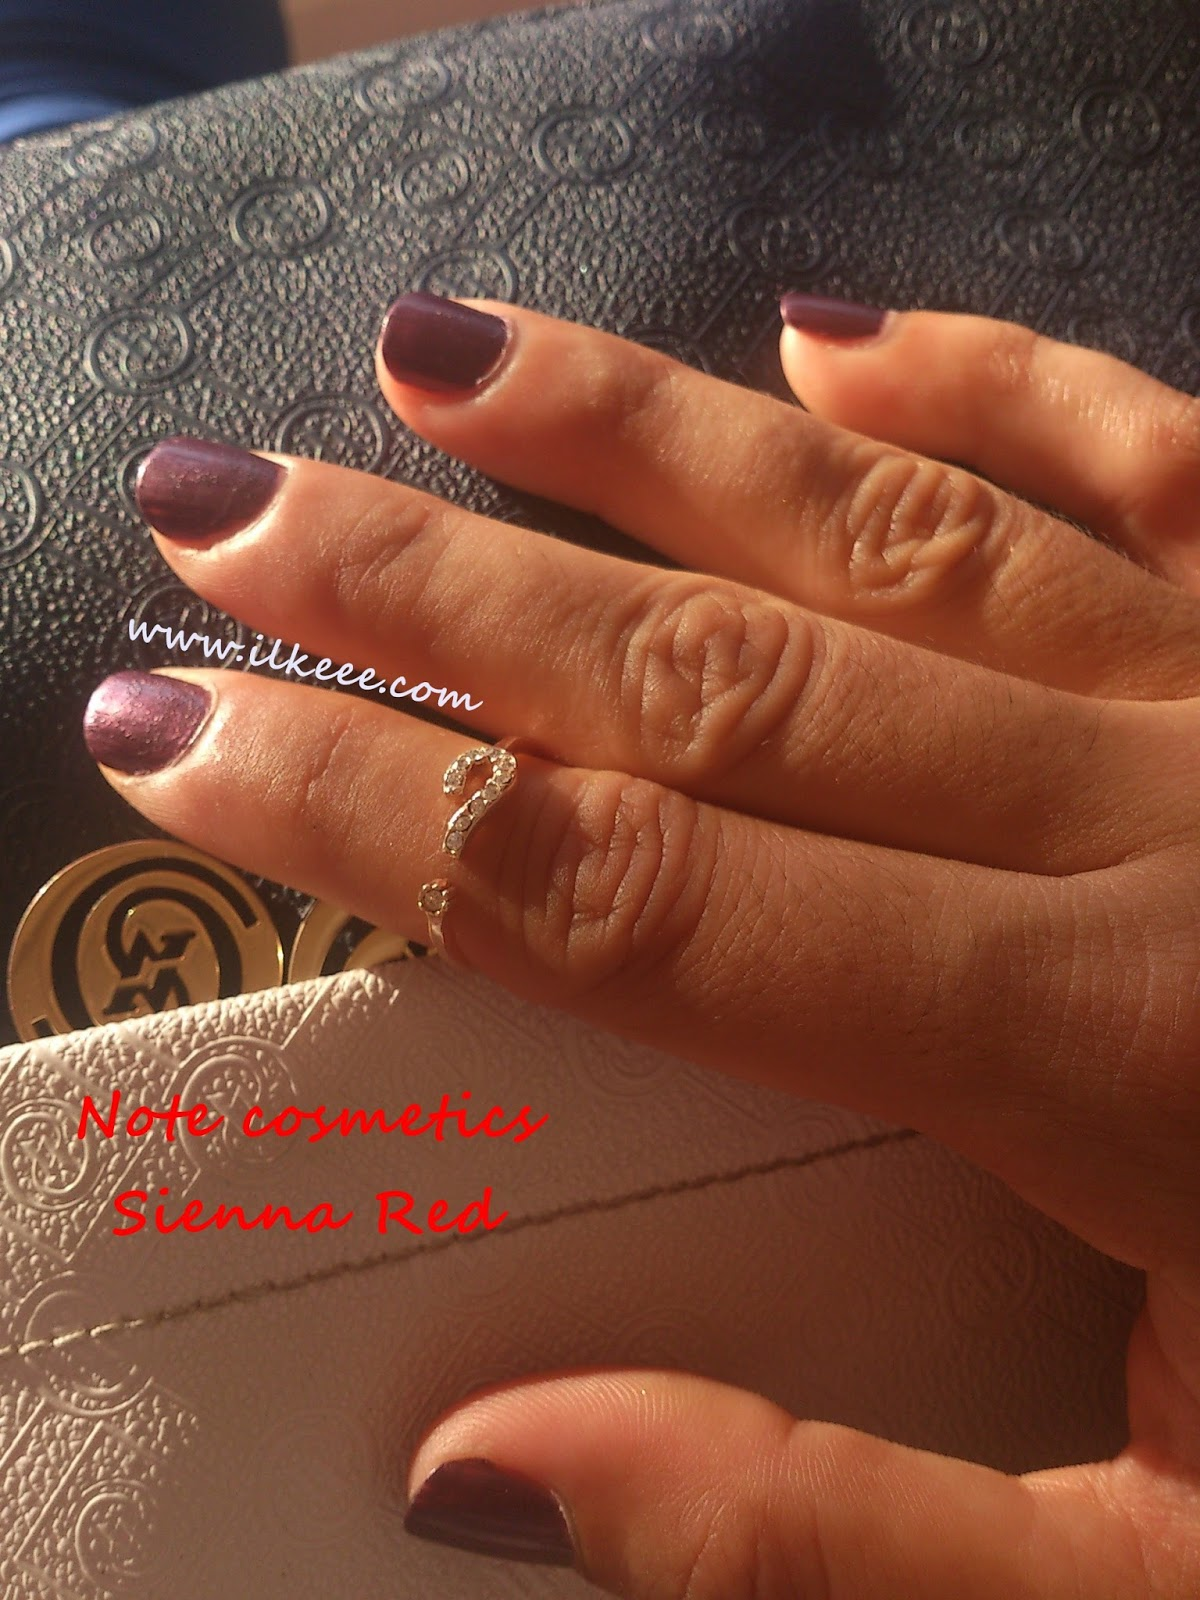 Note Cosmetics - Nail Polish - Sienna Red Oje - Note Ojeleri Kullananlar